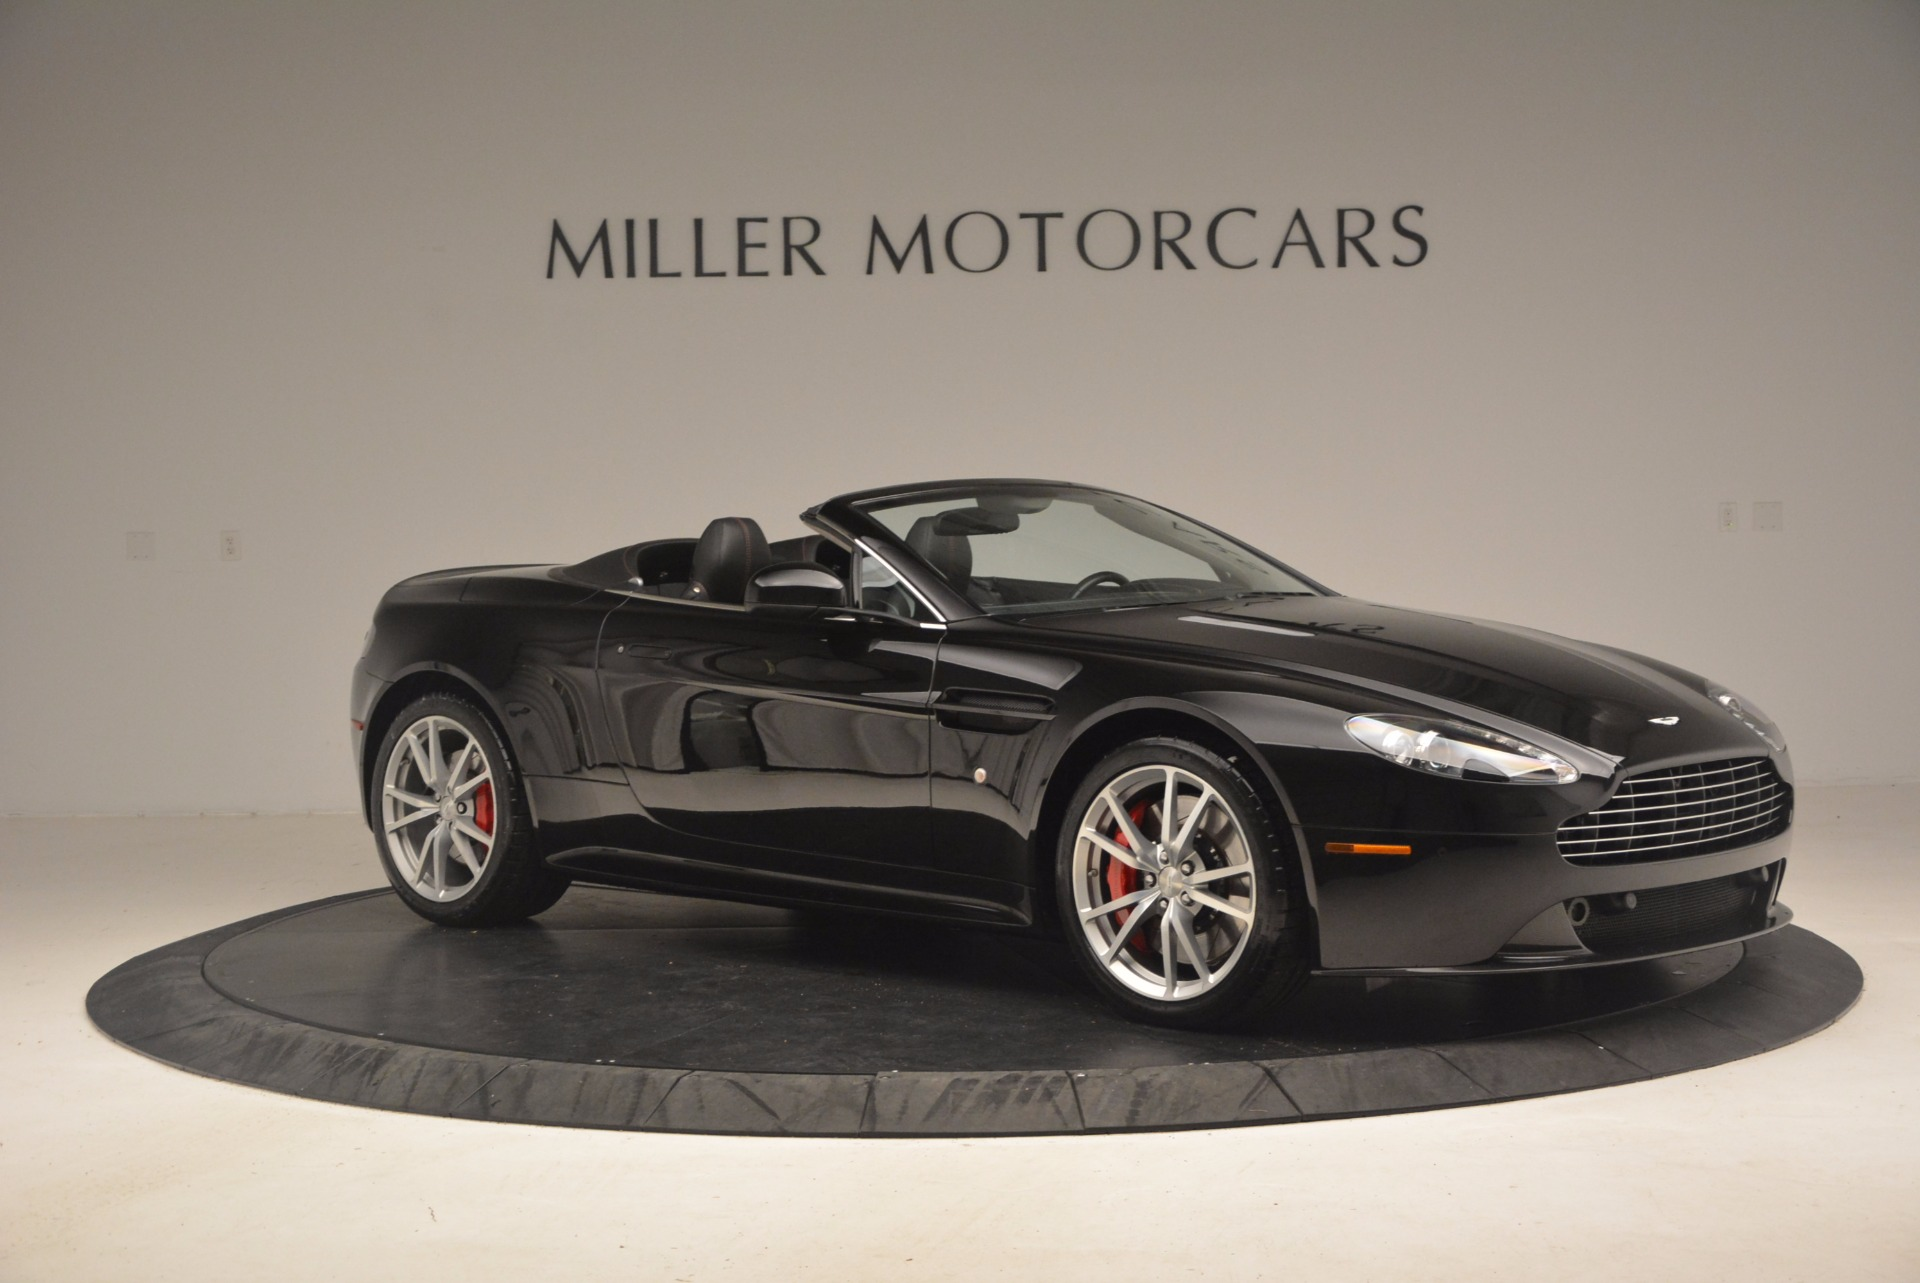 Used 2012 Aston Martin V8 Vantage S Roadster For Sale In Westport, CT 1181_p10